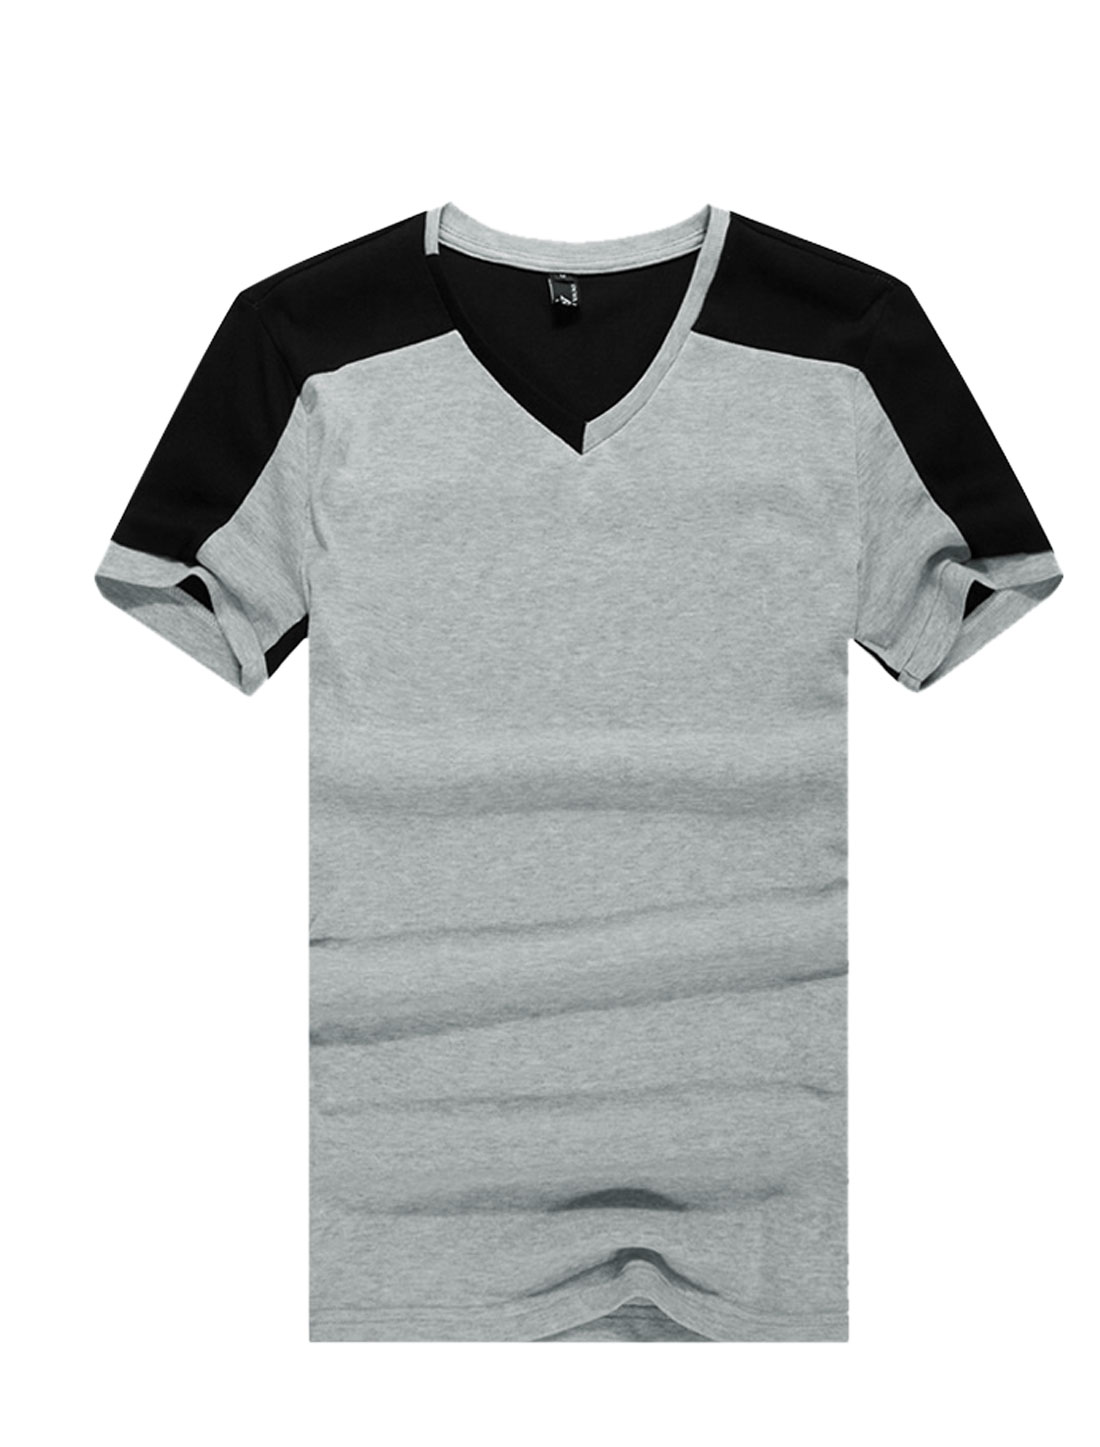 Men V Neck Panel Design Ribbed Design Casual T-Shirt Light Gray L